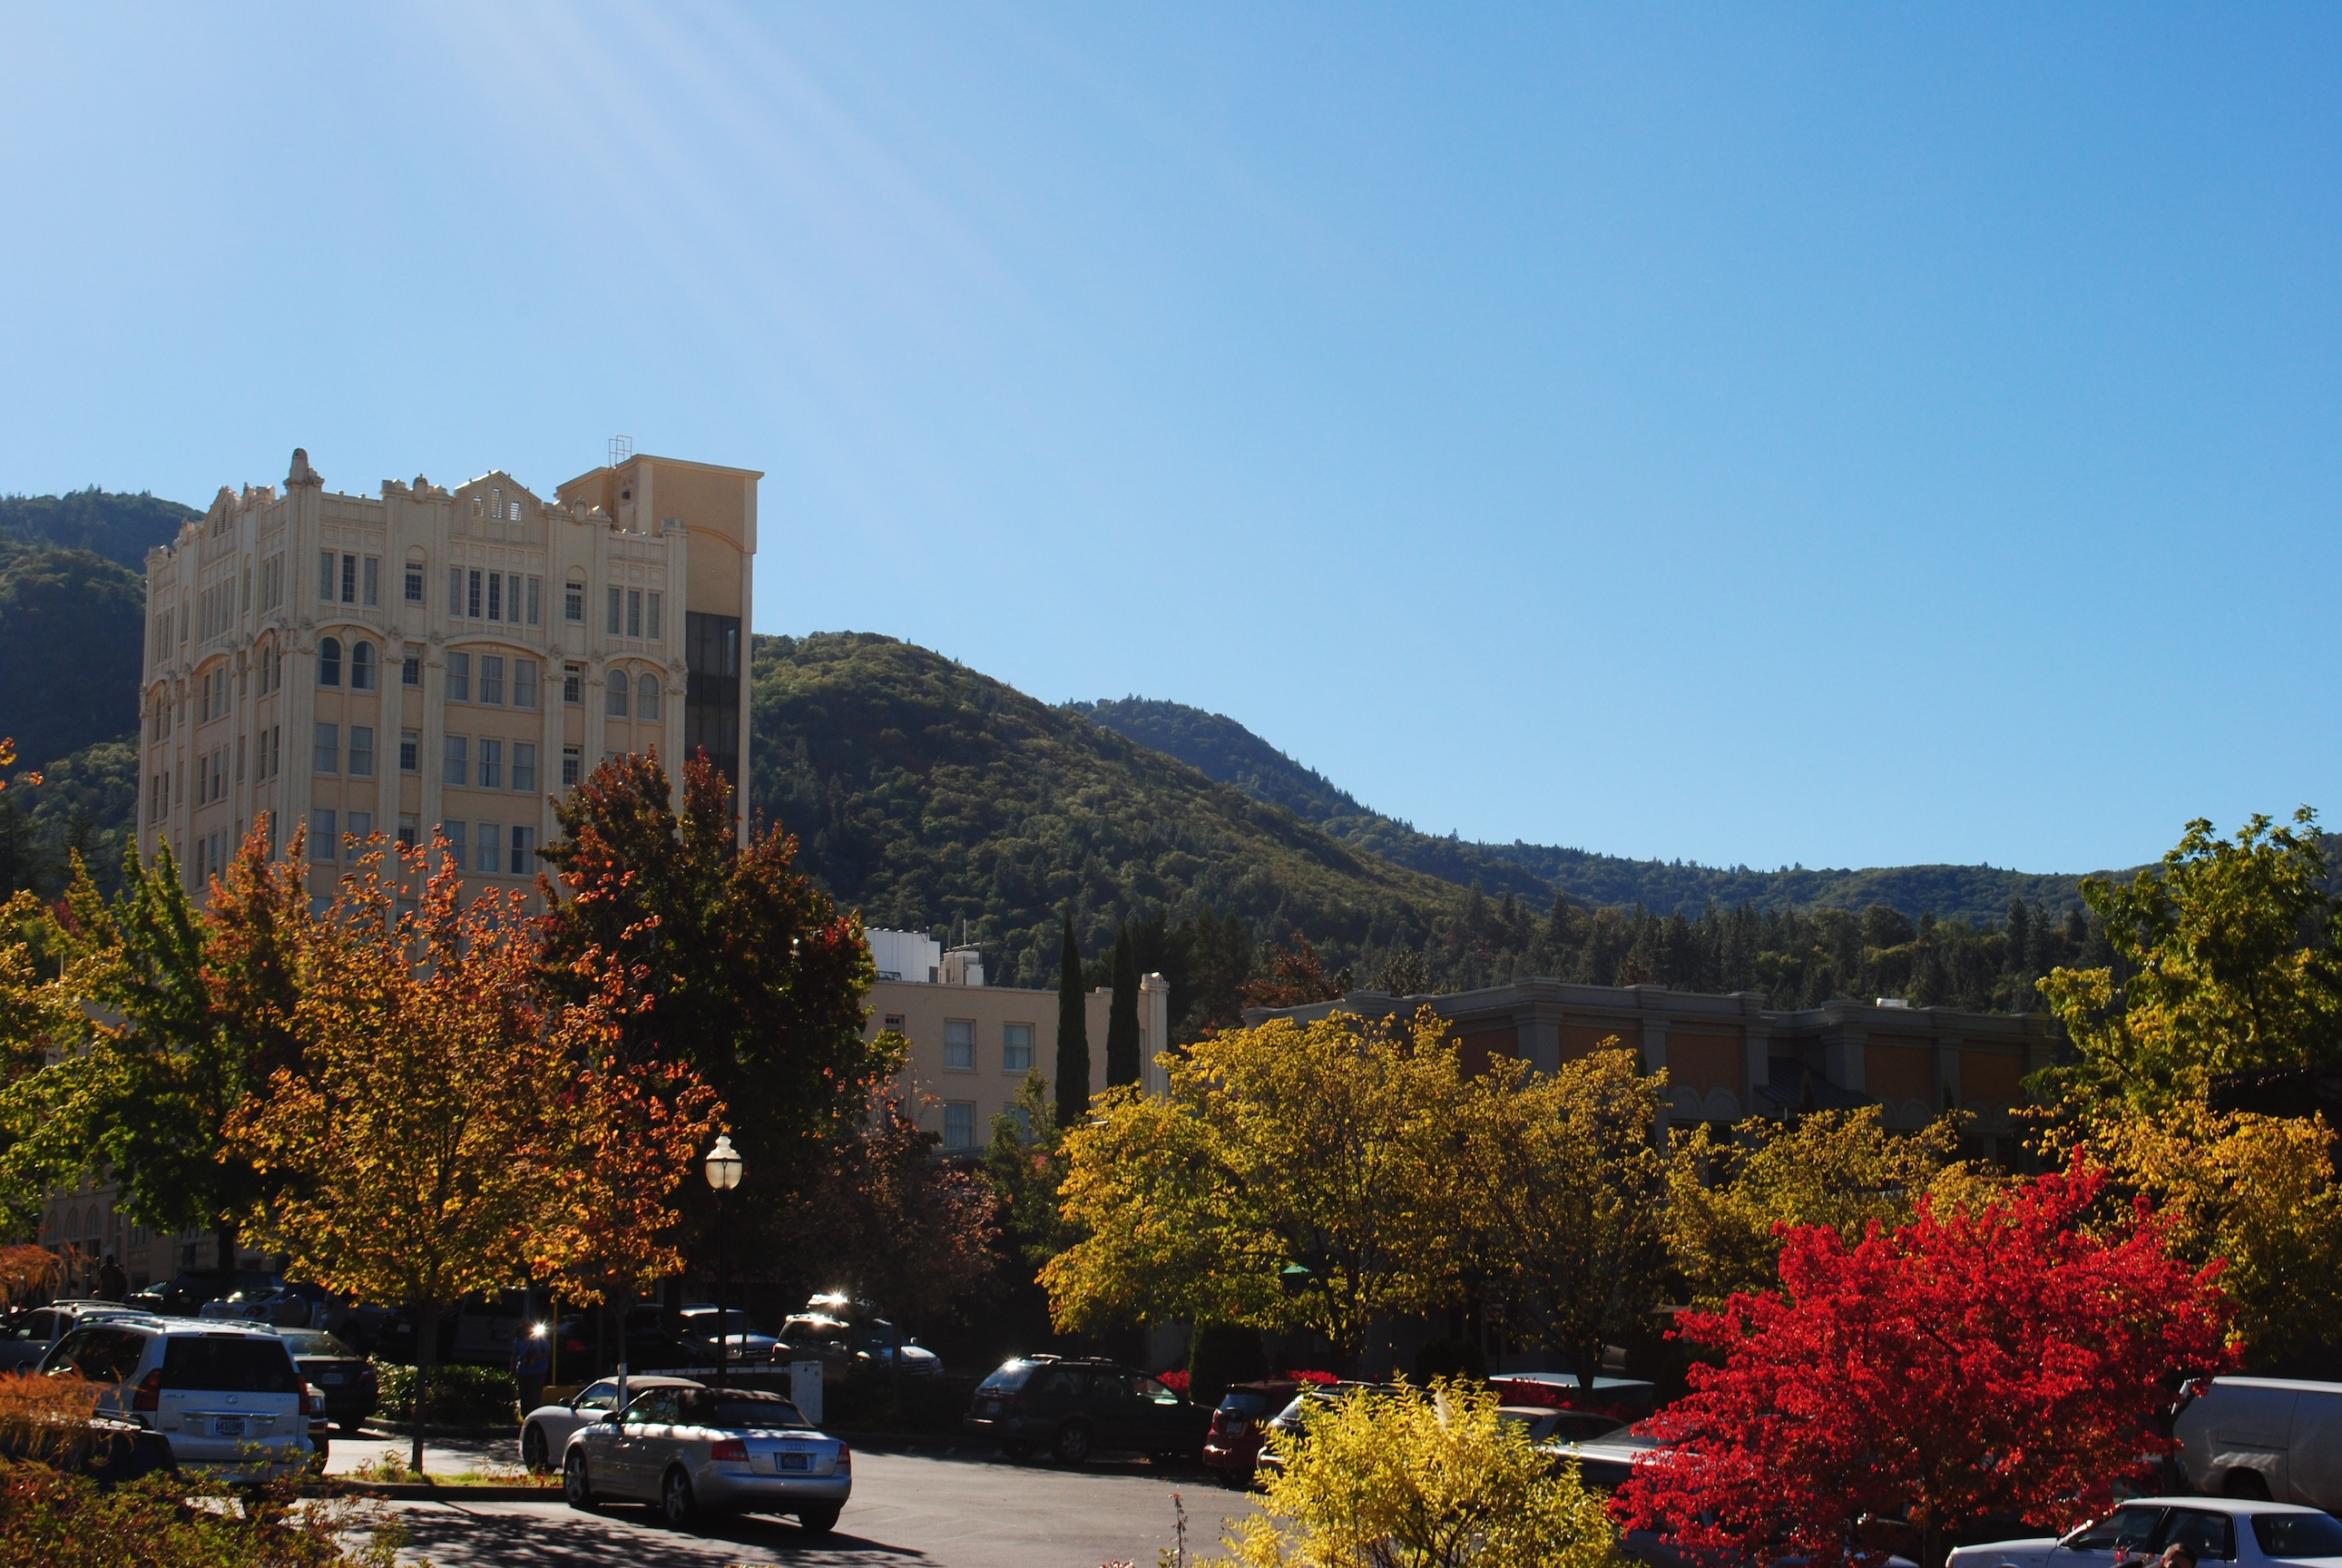 The Ashland Springs Hotel dominates the skyline of downtown Ashland, Ore. (Rebecca Spence)